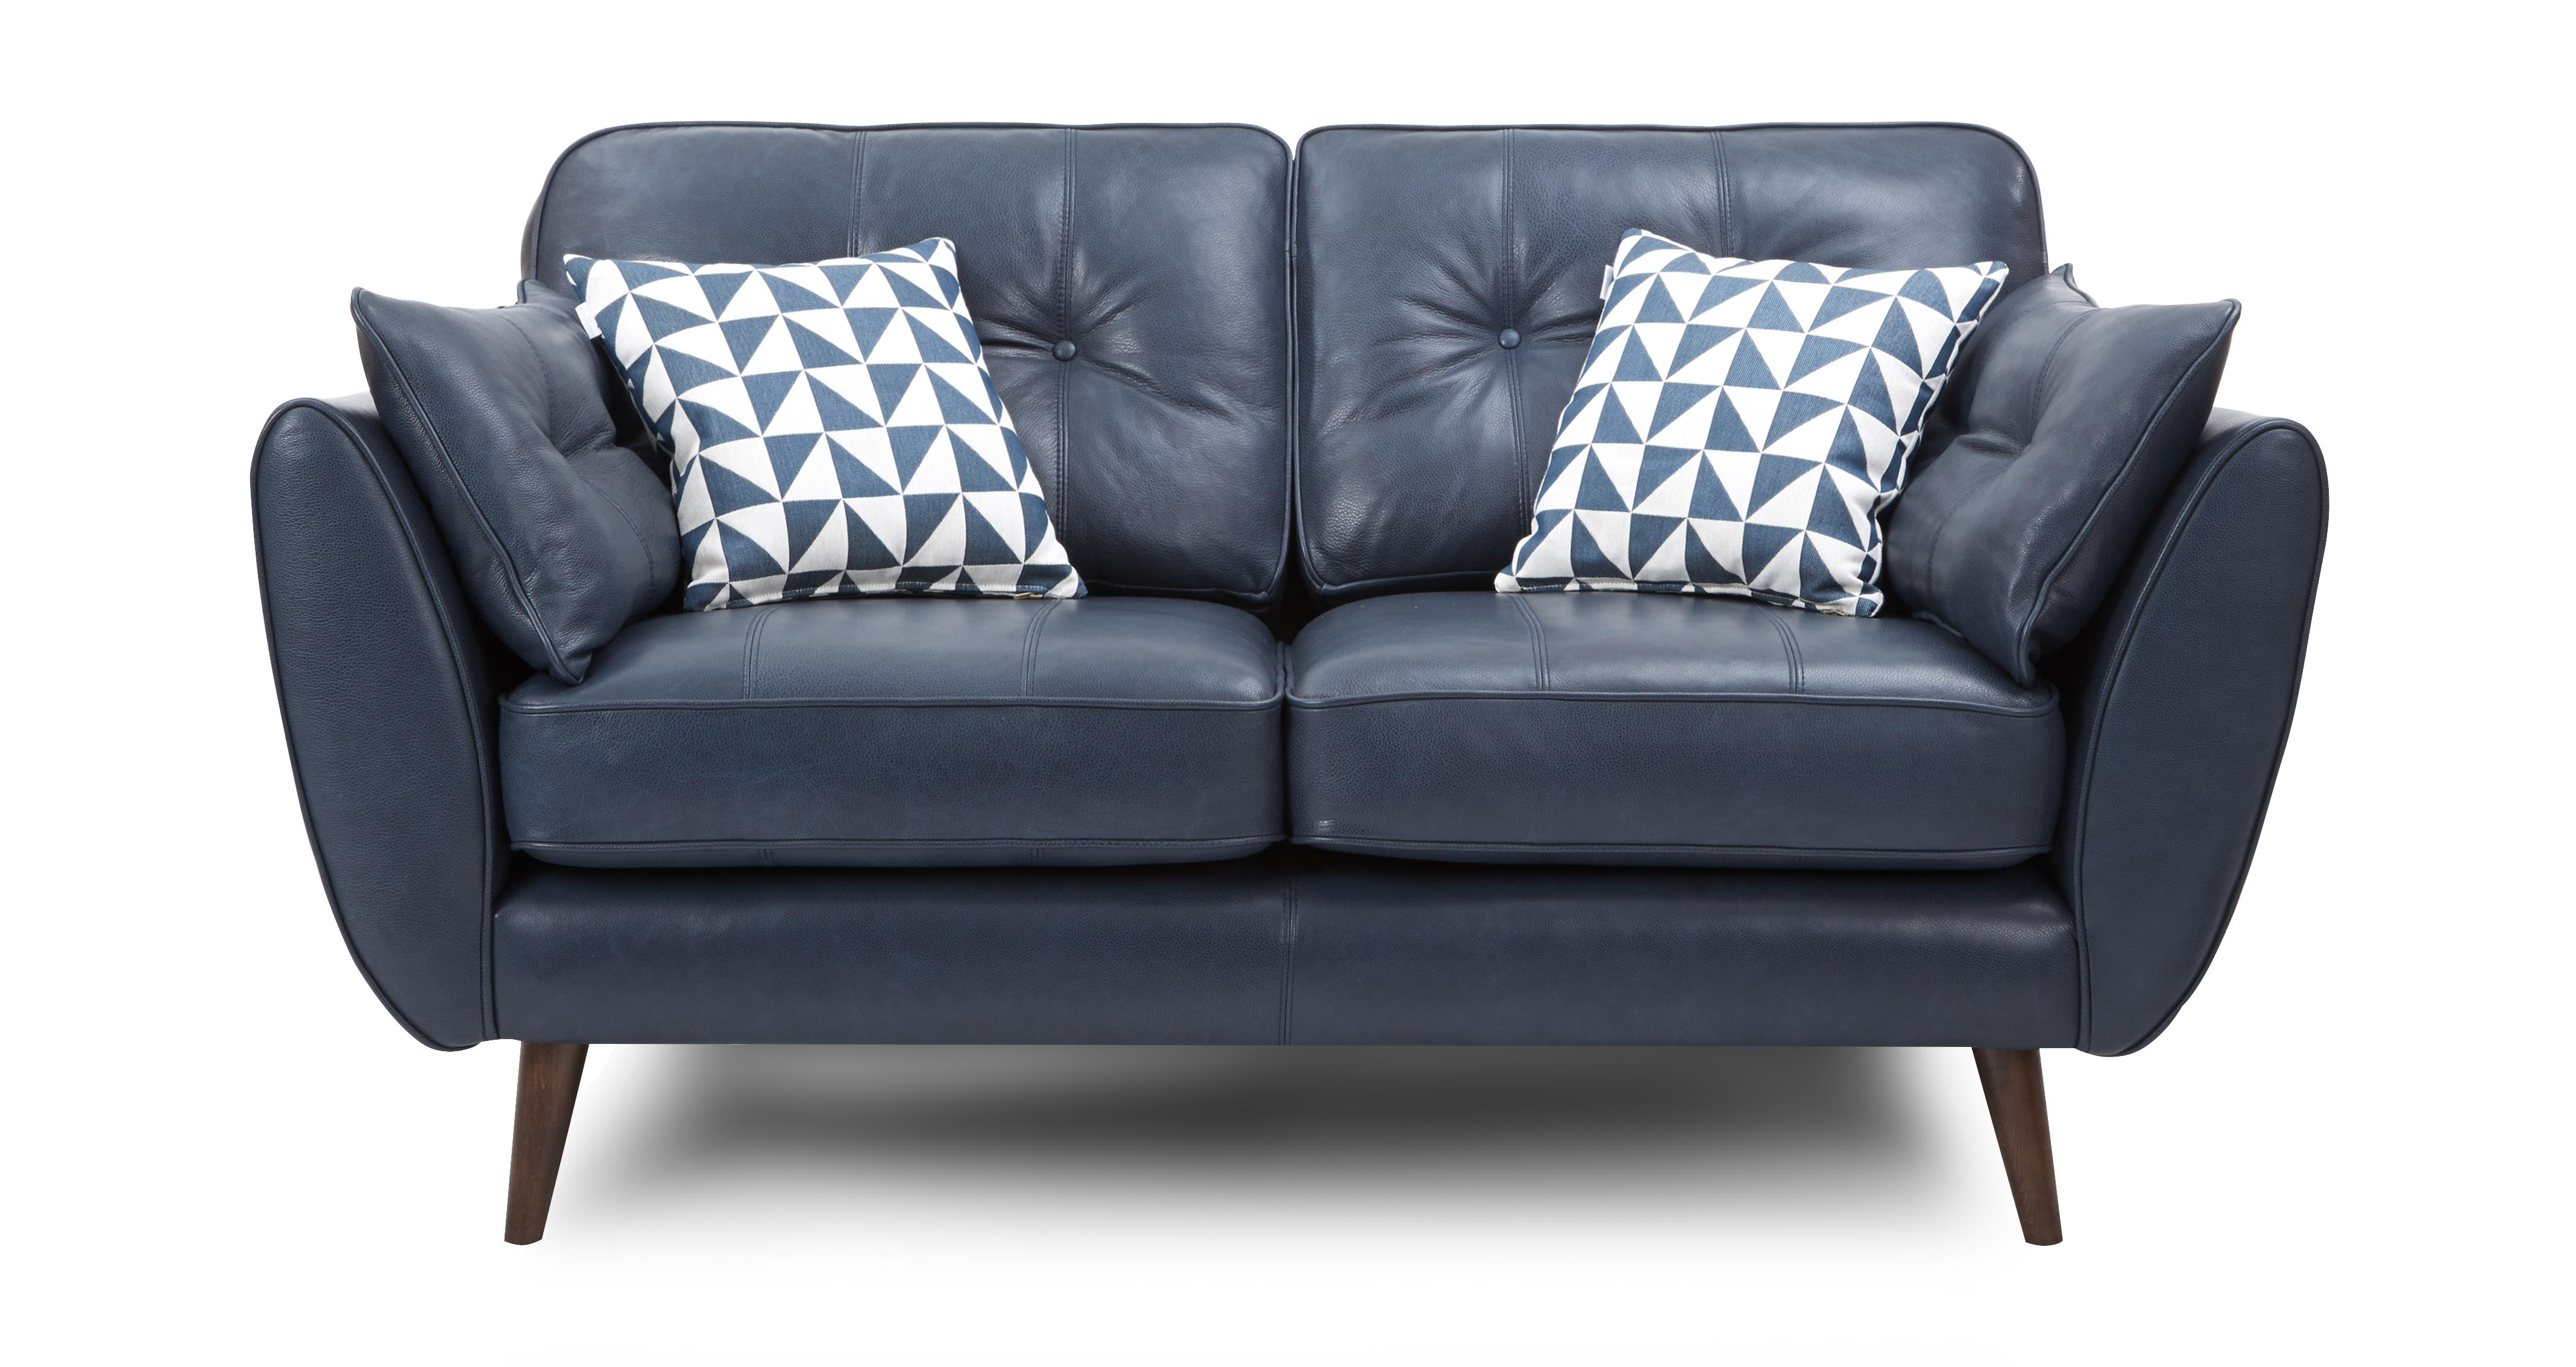 Zinc leather 2 seater sofa dfs ireland for 2 seater sofa